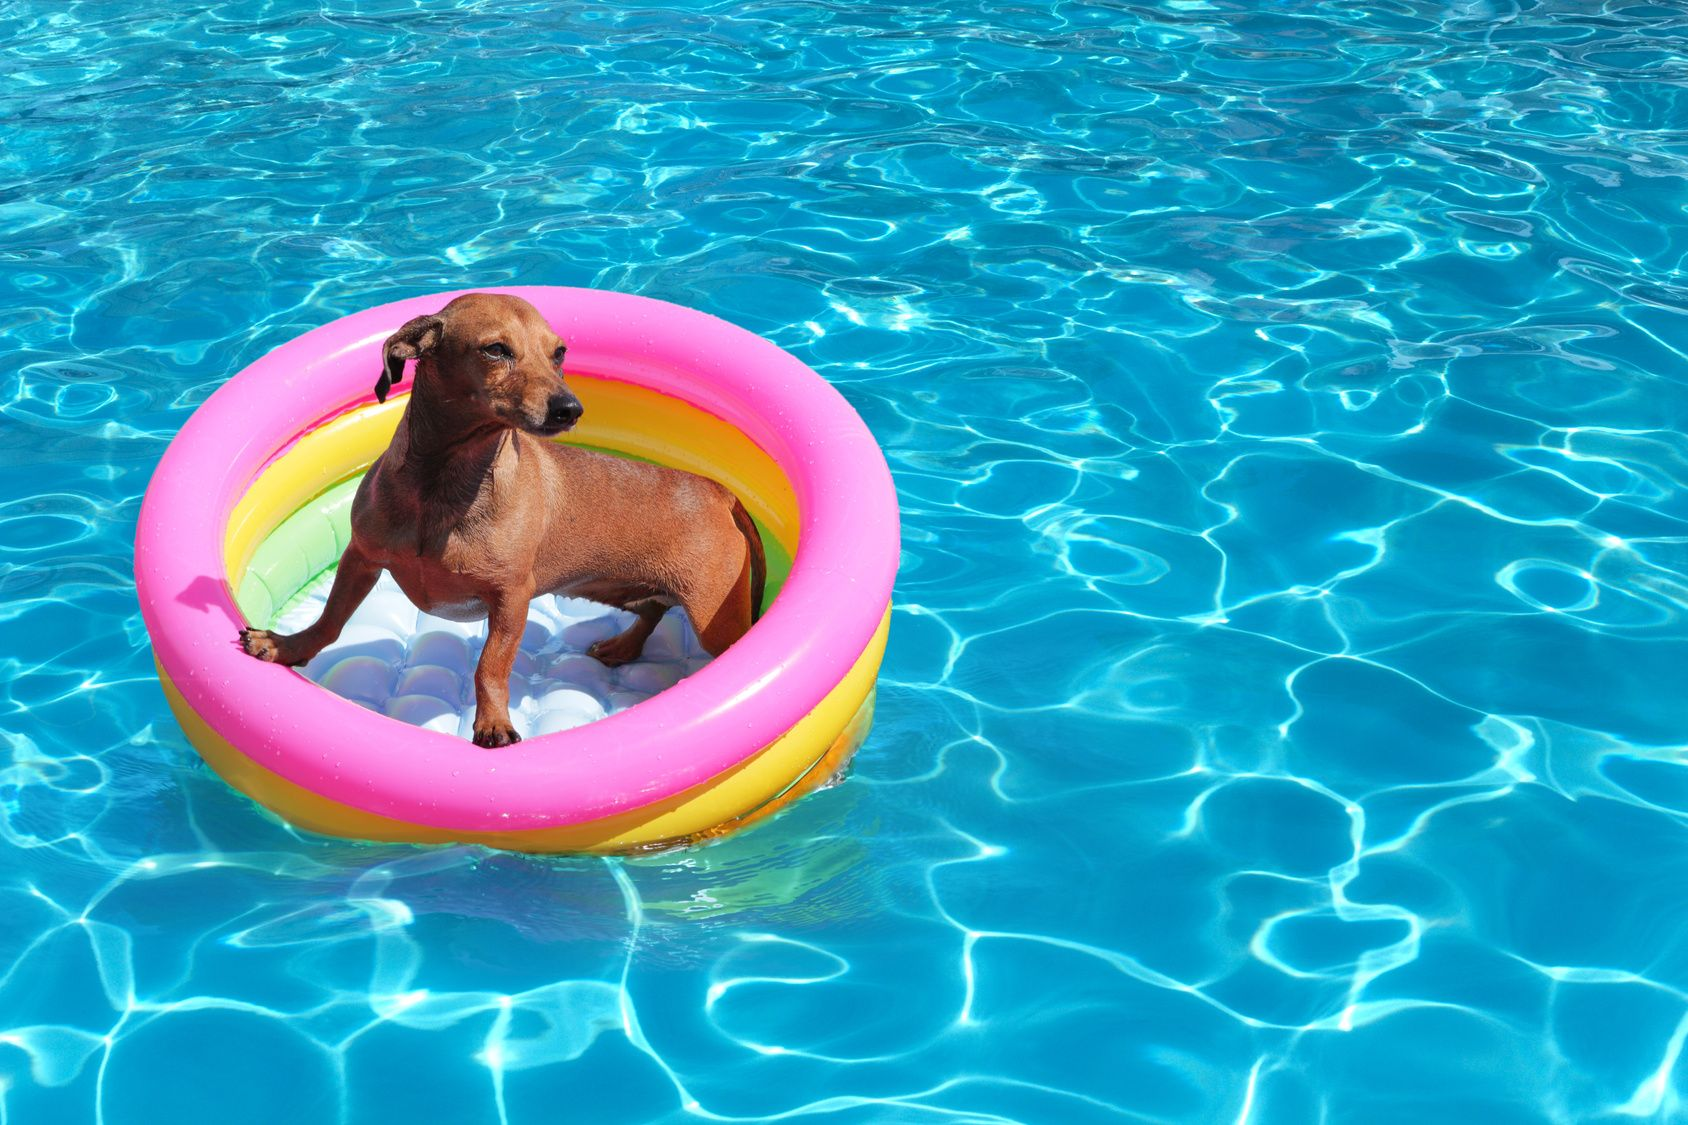 Swimming-Pool-Safety-for-Dogs-compressor.jpg